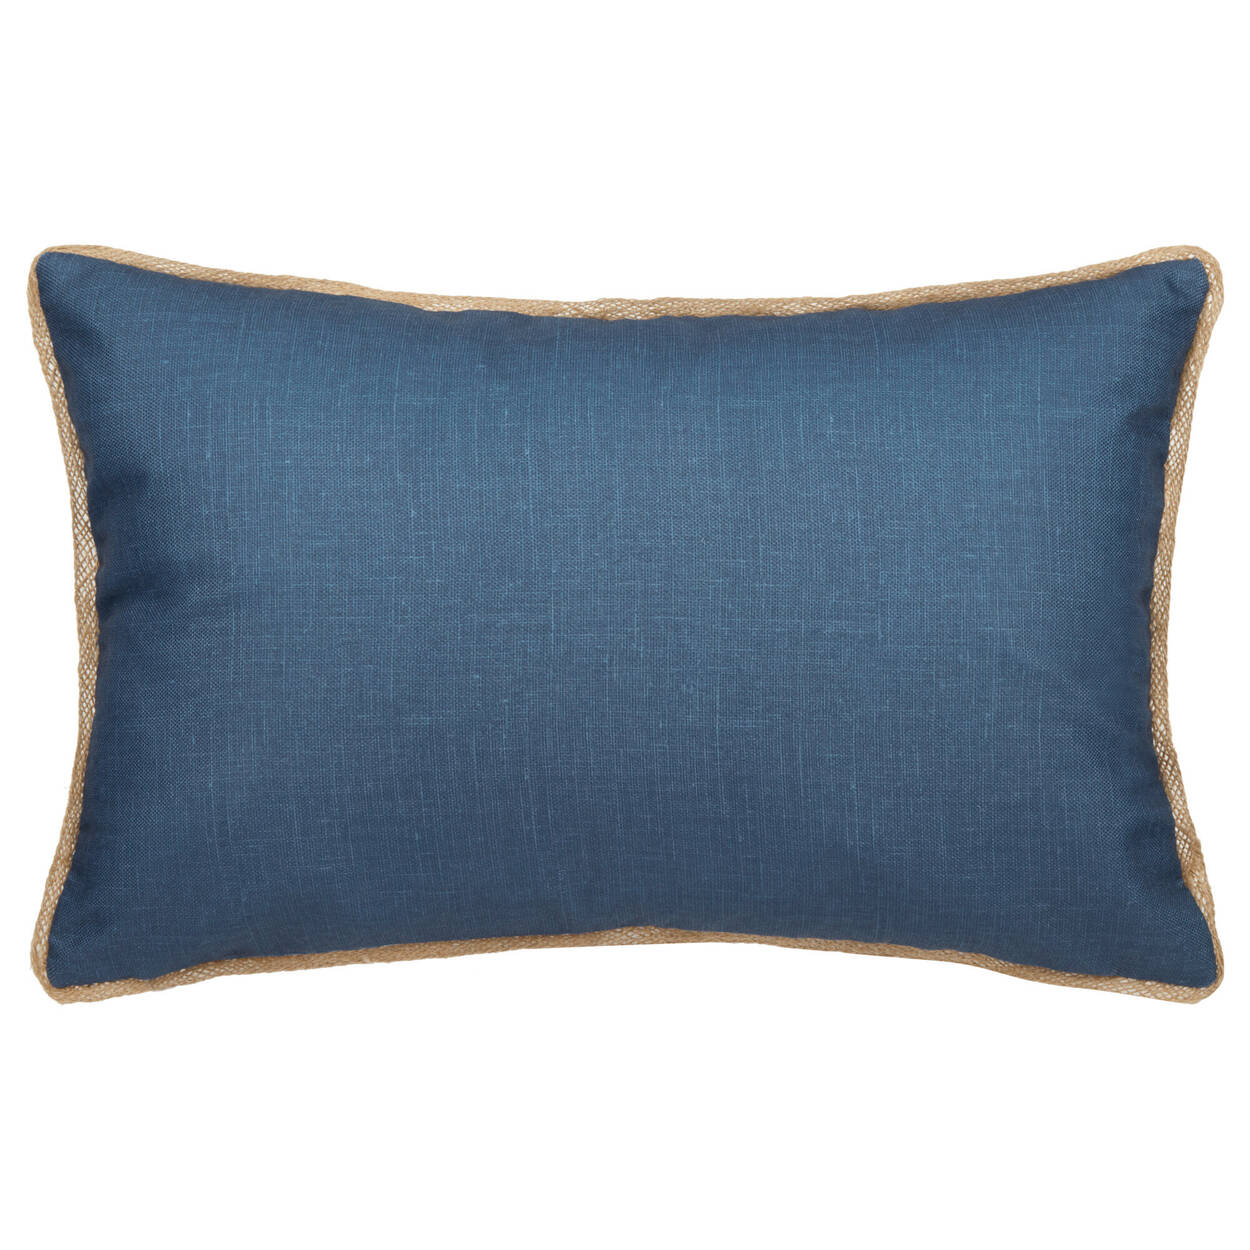 "Fish Water-Repellent Decorative Lumbar Pillow 13"" X 20"""